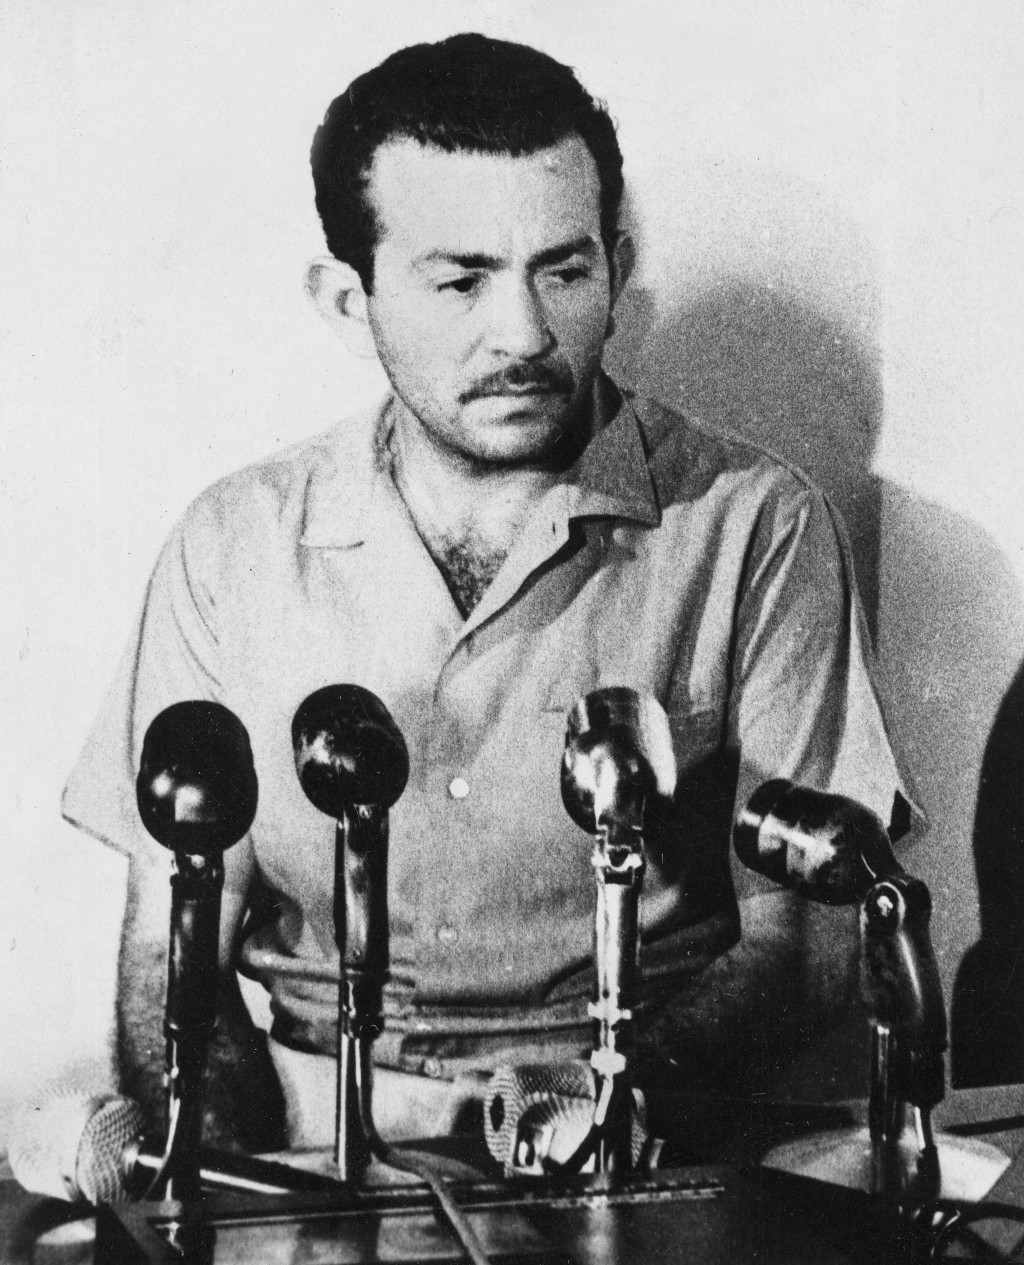 FILE - In this Aug. 26, 1967 file photo, Manuel Espinoza Diaz speaks at a news conference in Caracas, Venezuela, at which he confessed being a Cuban s